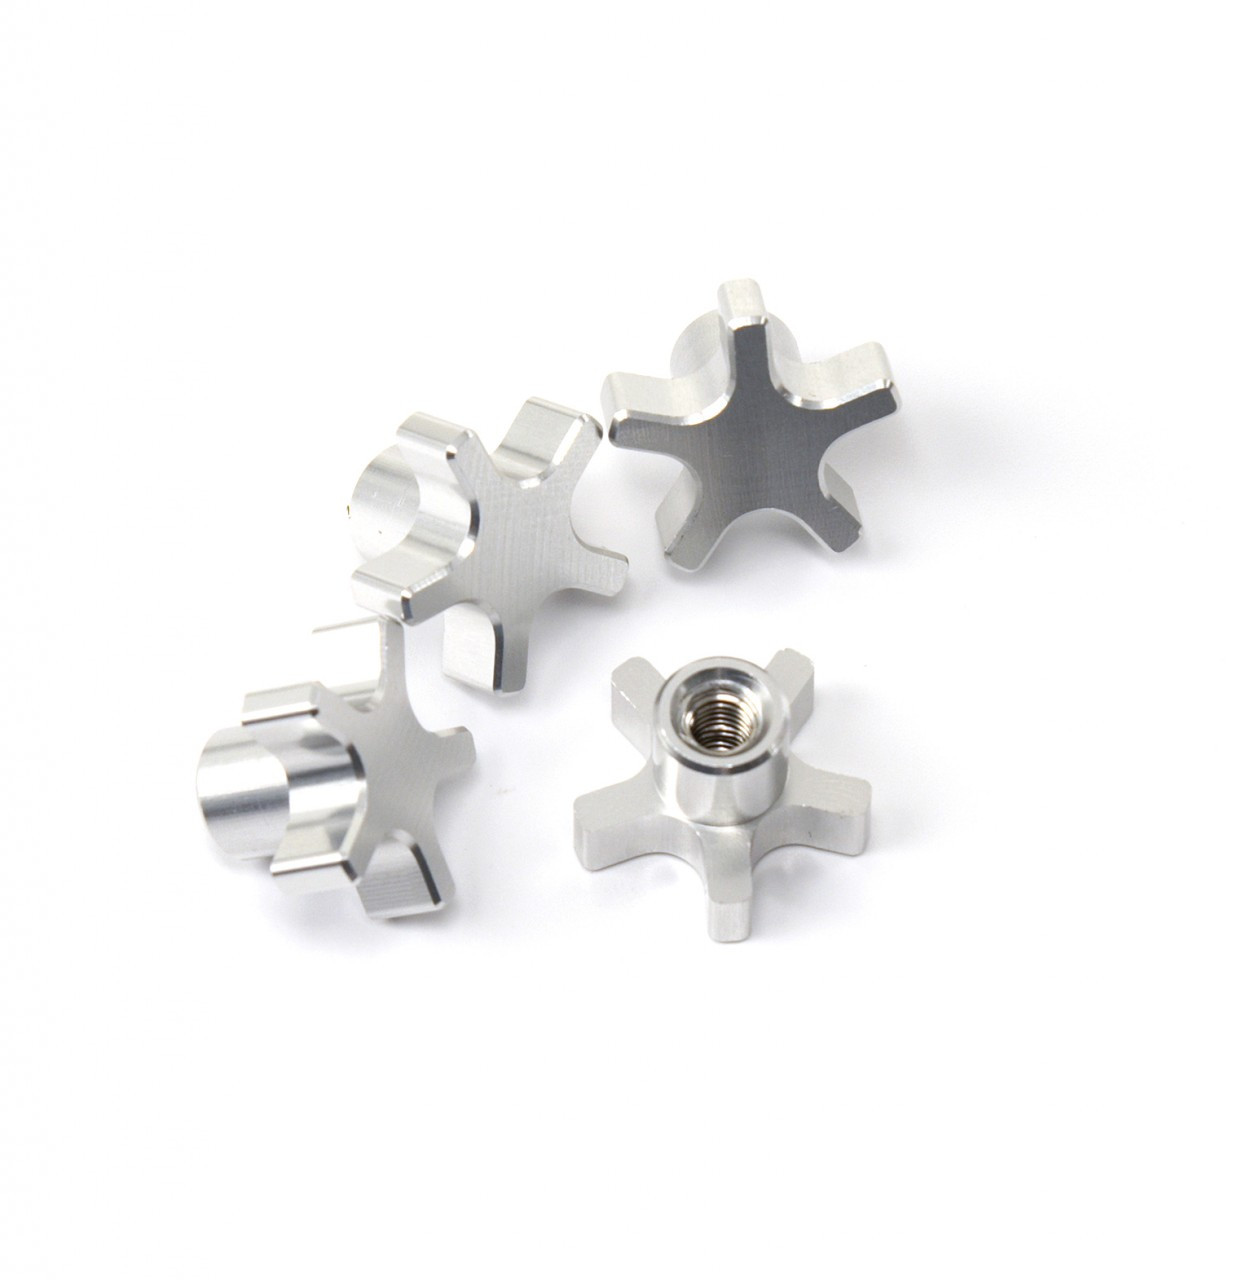 Traxxas T-MAXX E-MAXX 5 Spoke Silver Anodized locking hub nuts.  Get rid of those stock 5mm lock nuts and pop some of these in there!